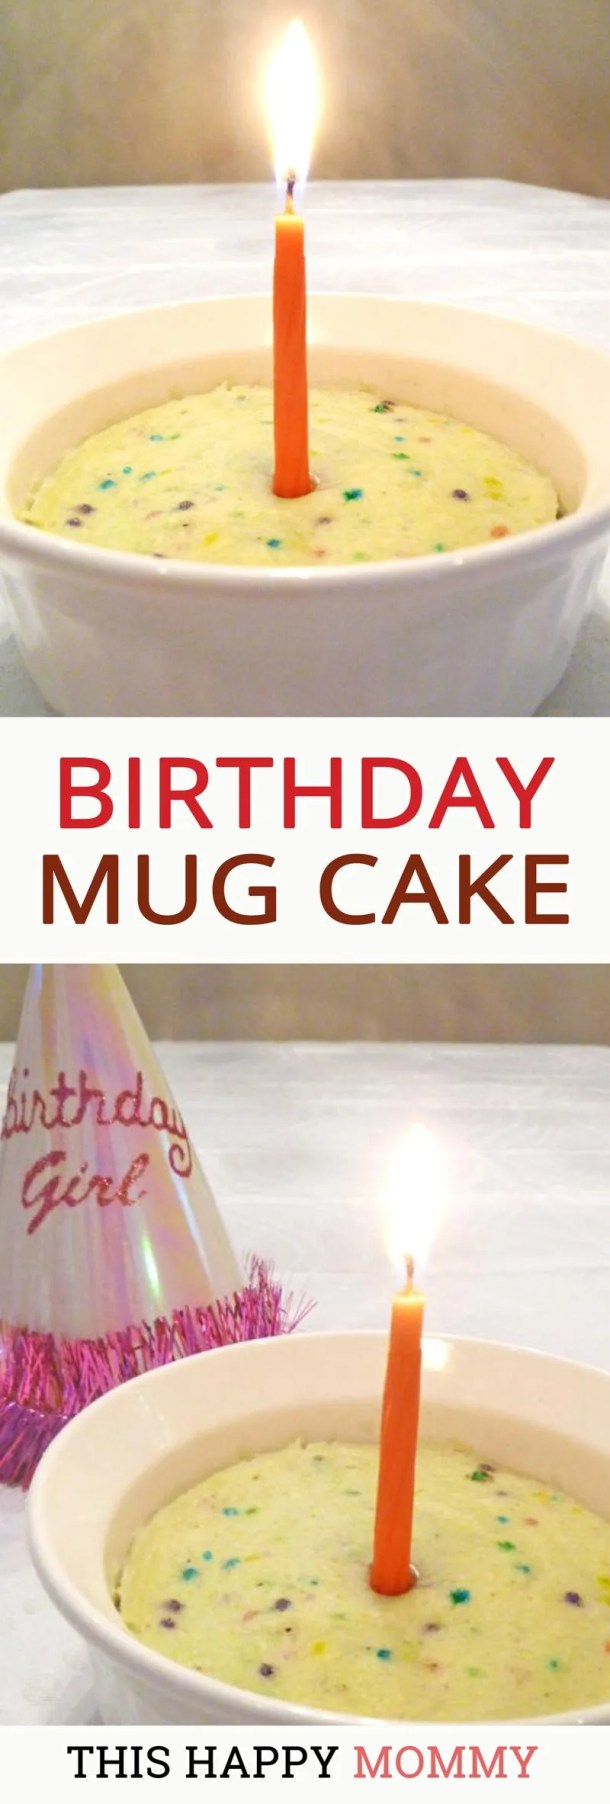 Quick and easy mini birthday cake. Enjoy all the flavors of birthday cake with this 5-minute treat. Birthday Mug Cake is a rich, velvety vanilla cake filled with yummy colorful sprinkles. Made without egg, butter, oil, or cream.   thishappymommy.com